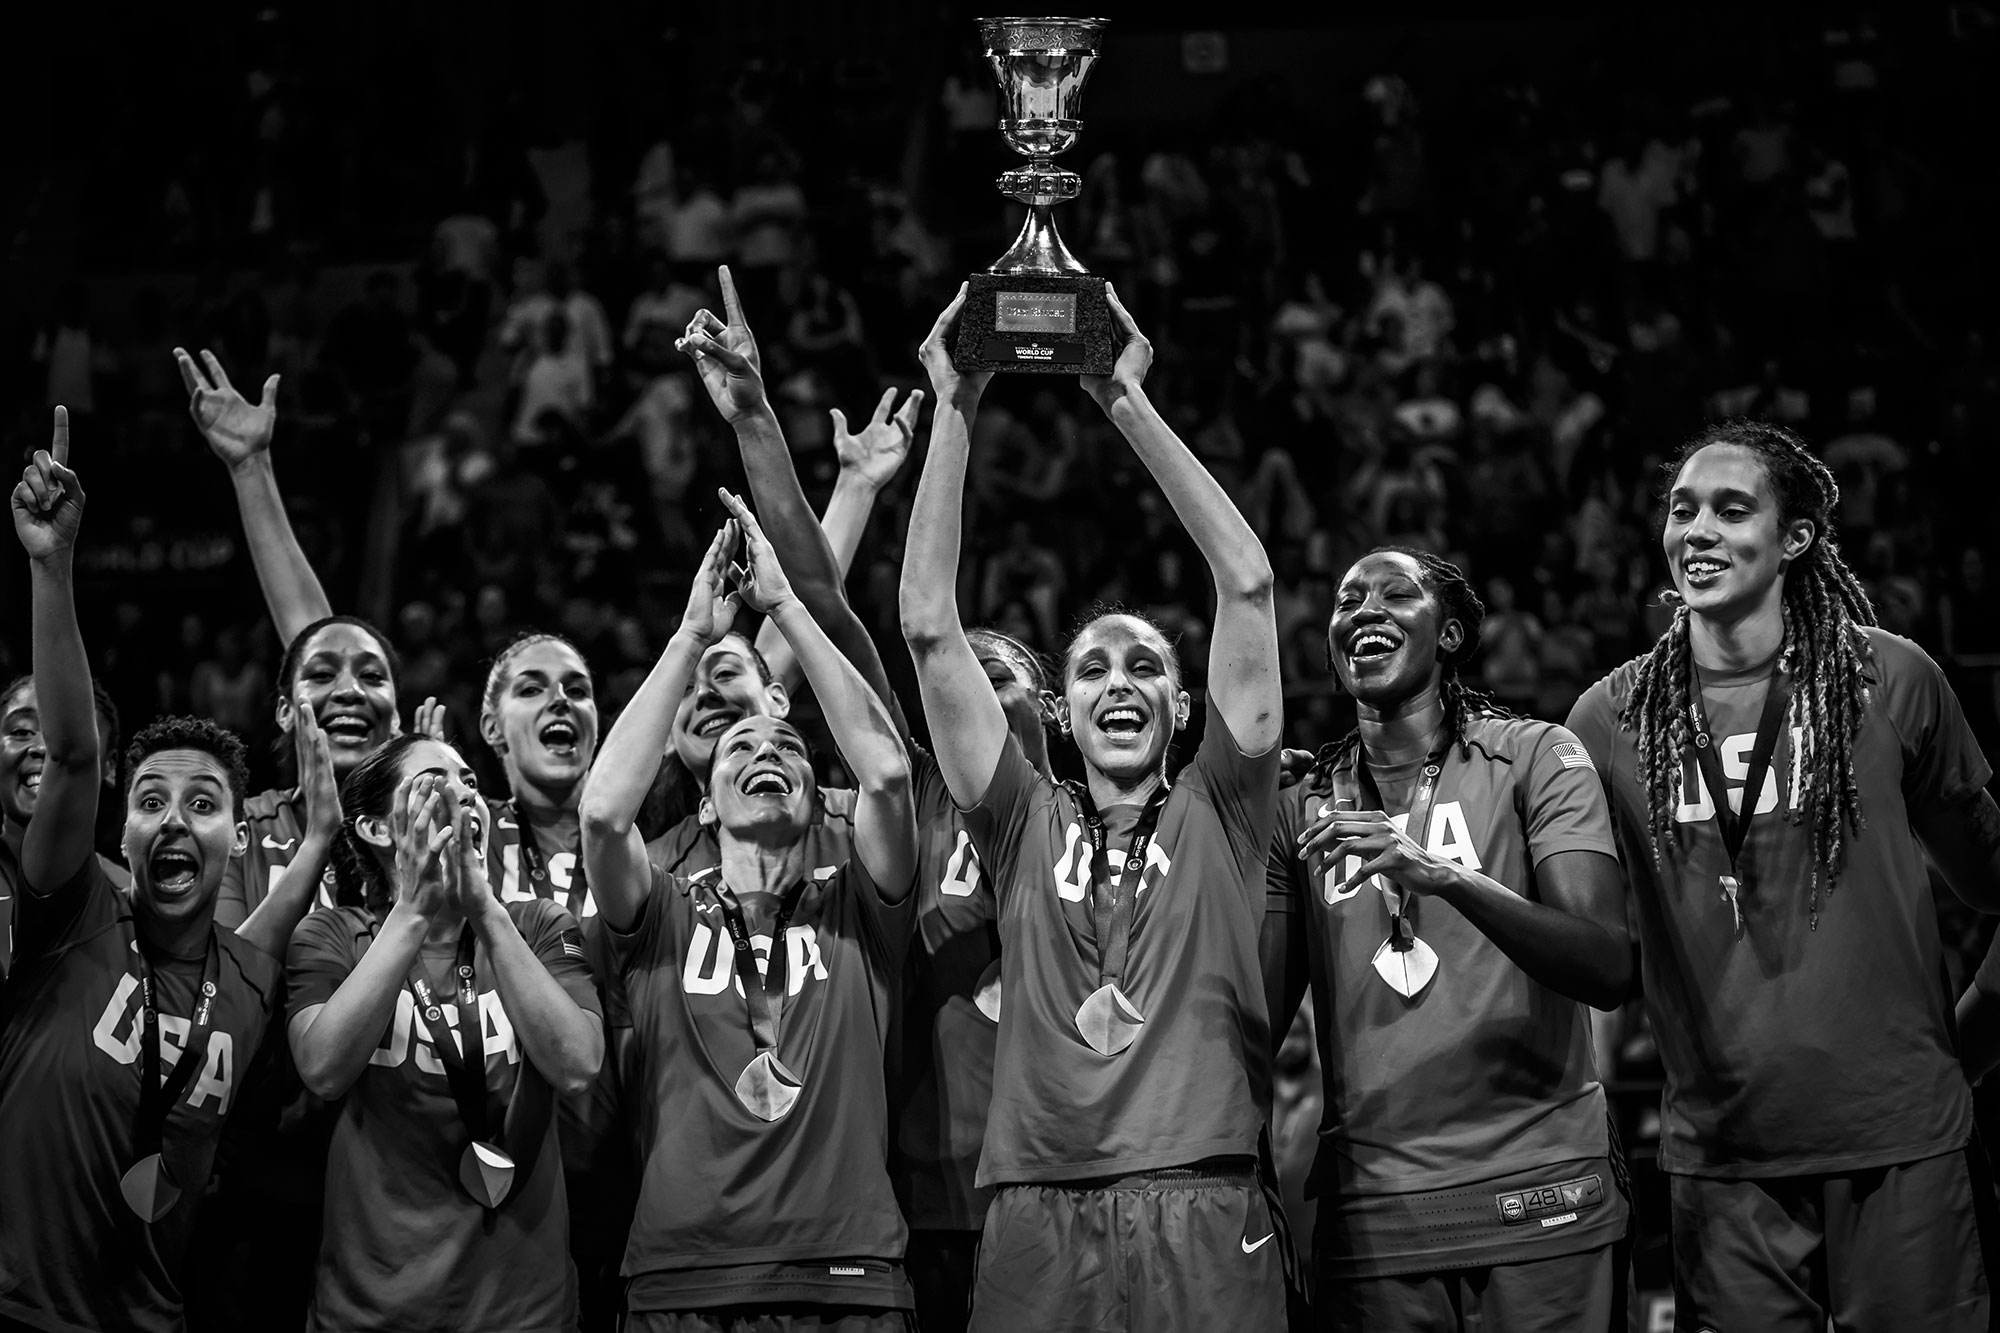 FIBA Women's Basketball World Cup 2018 Champions